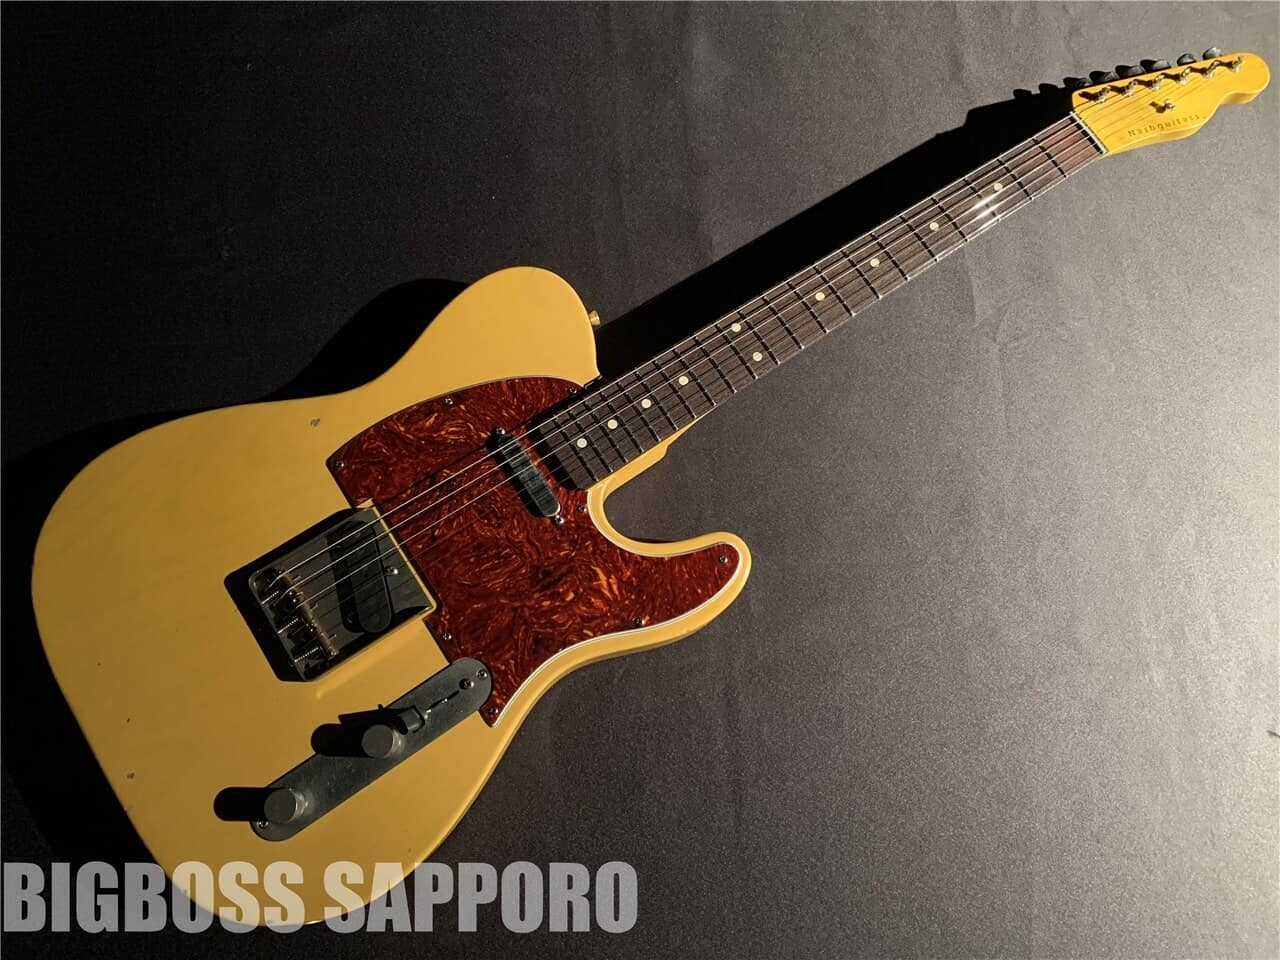 【即納可能】Nash Guitars(ナッシュギターズ) T63 (Butterscotch Blonde) 札幌店